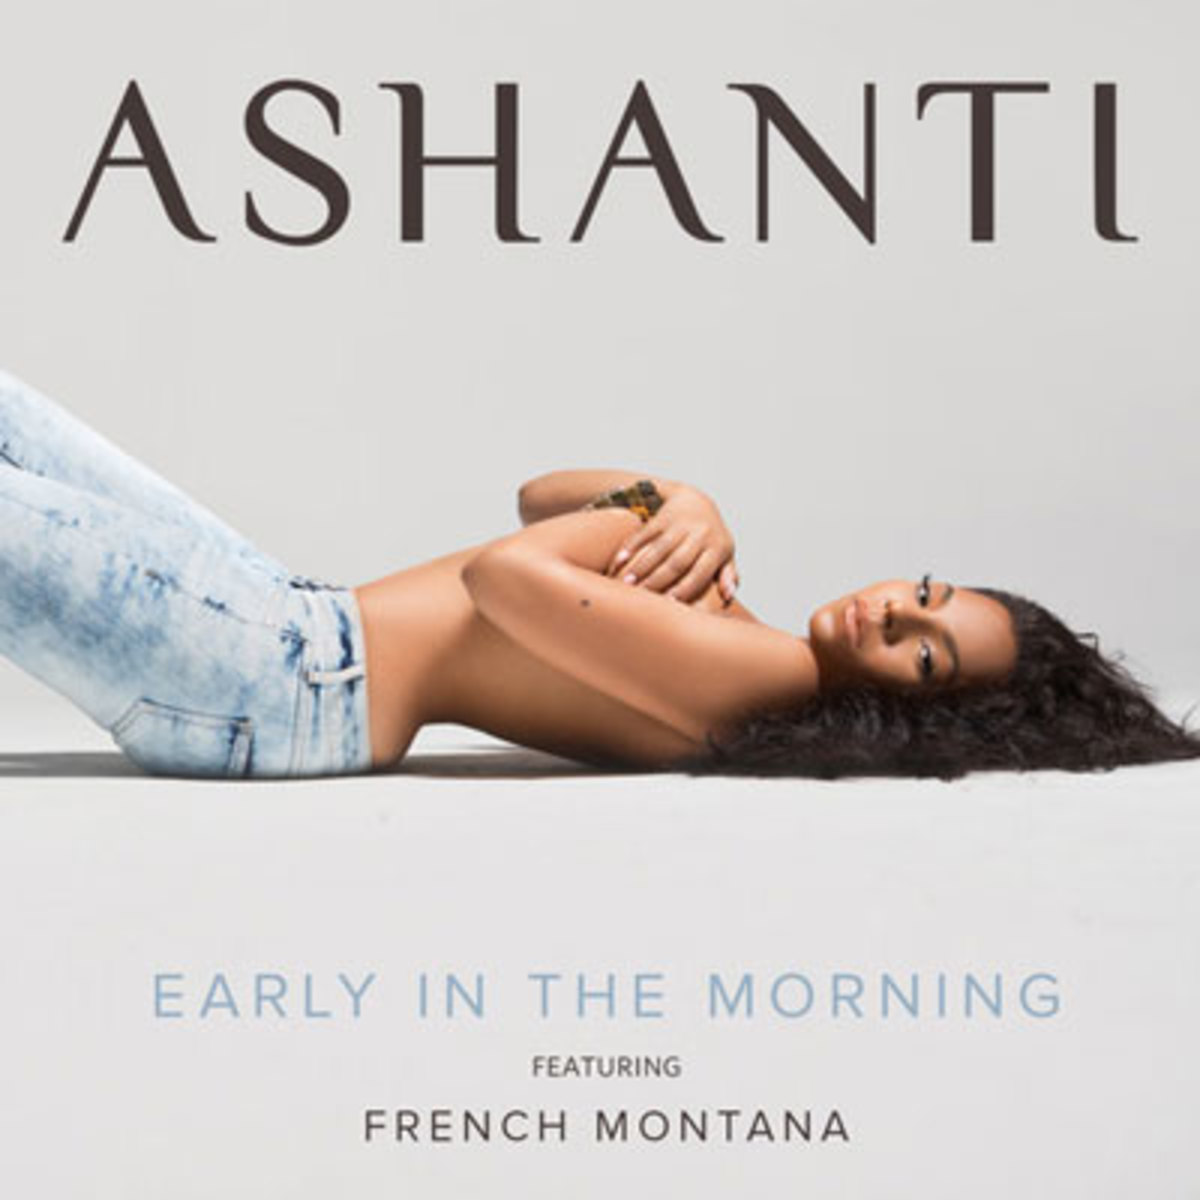 ashanti-earlymorning.jpg